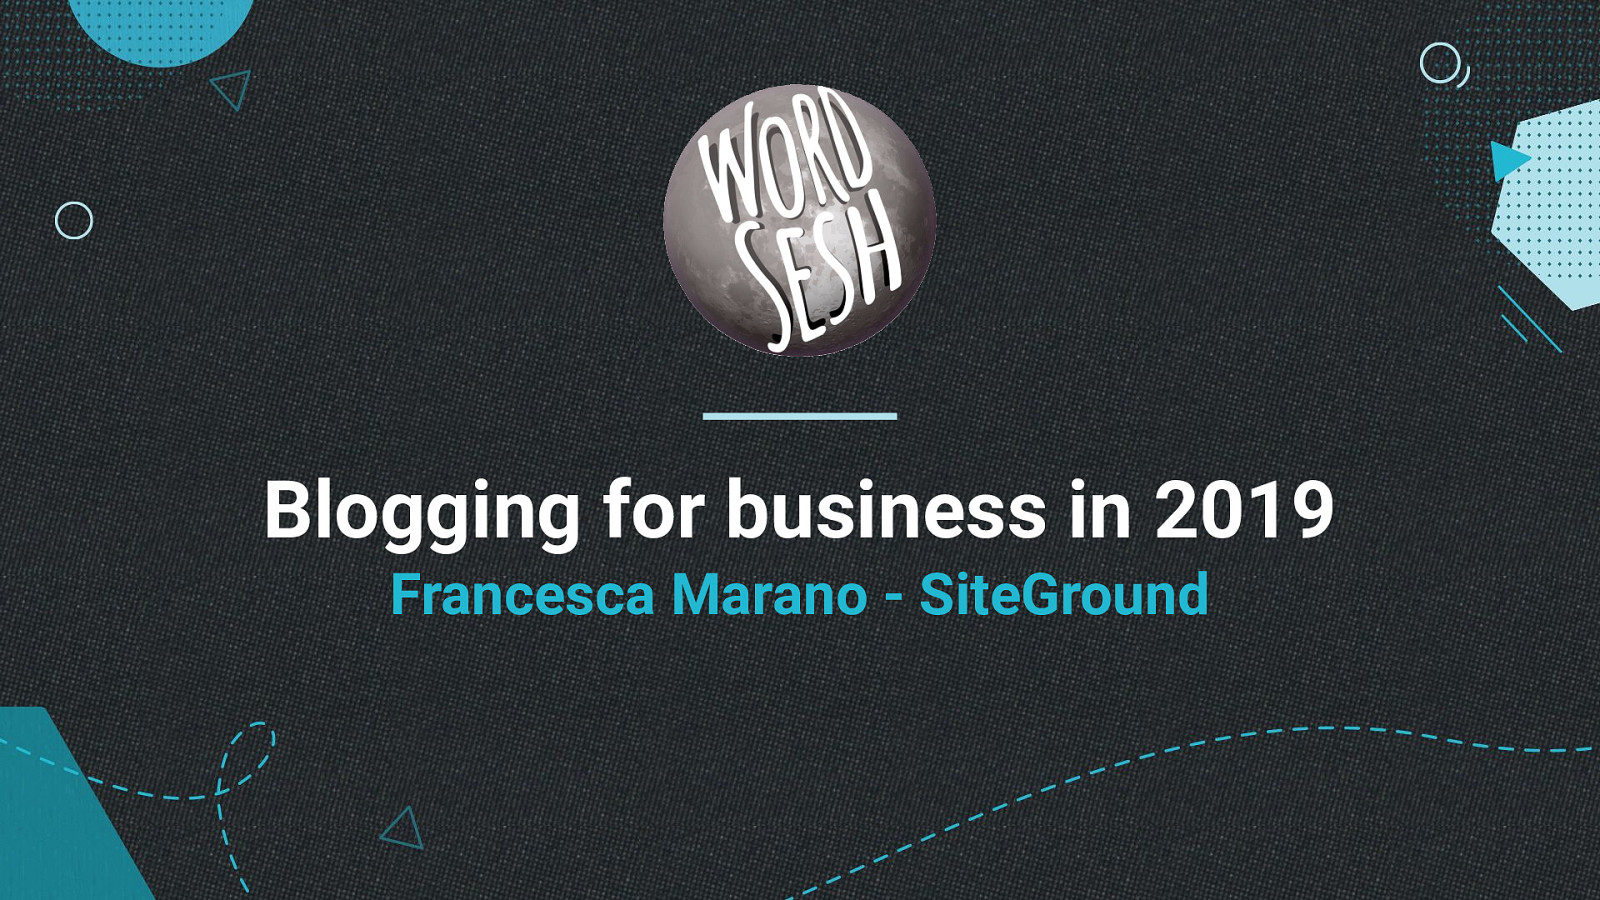 Blogging for business in 2019 Francesca Marano - SiteGround